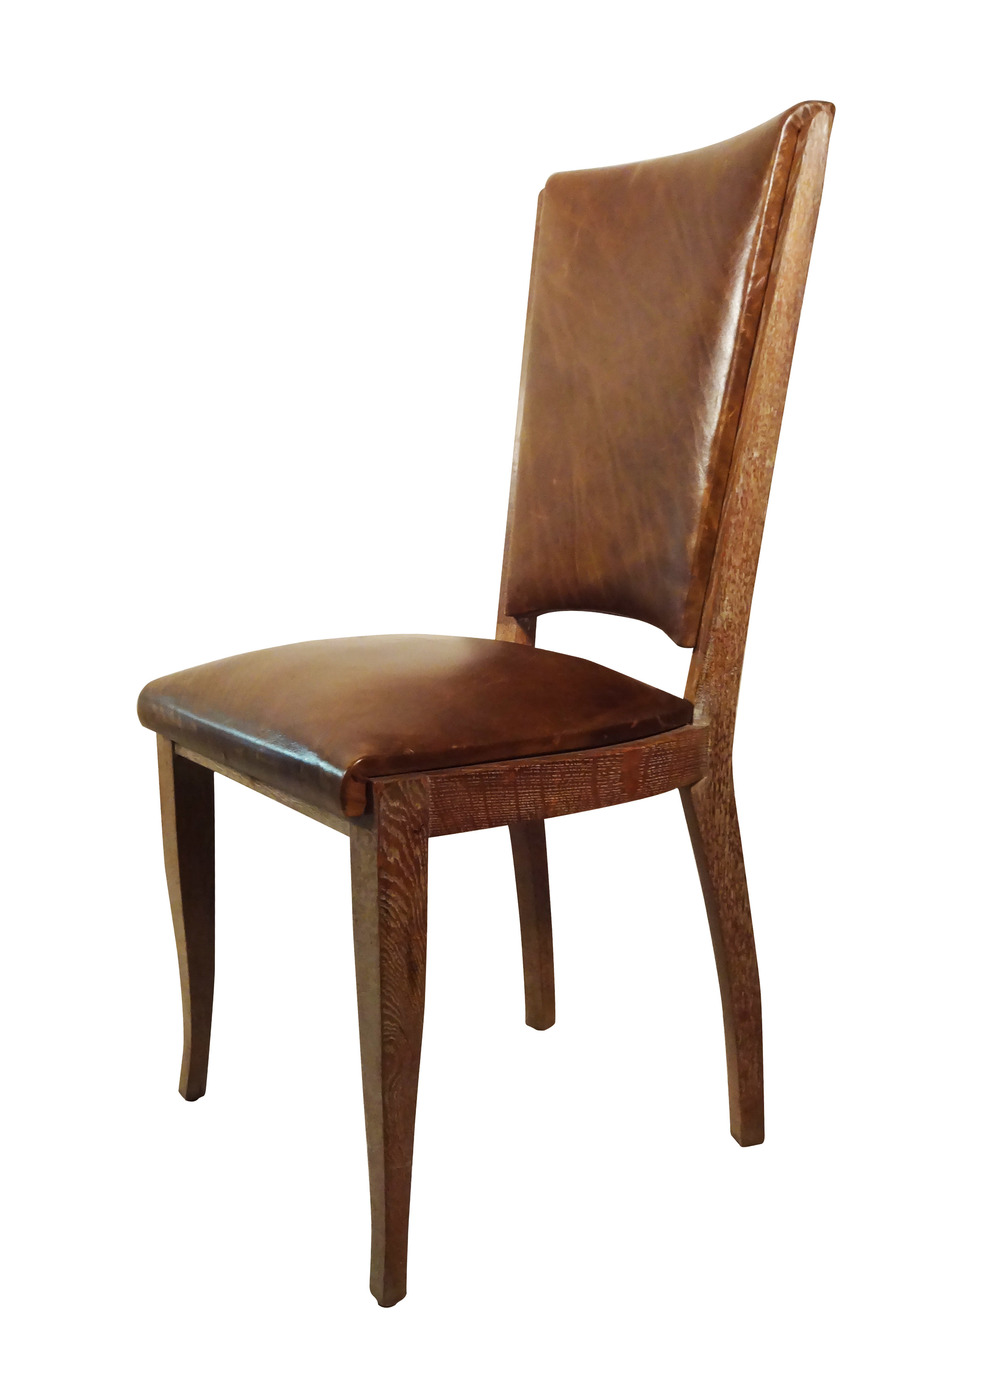 oak chairs.jpg